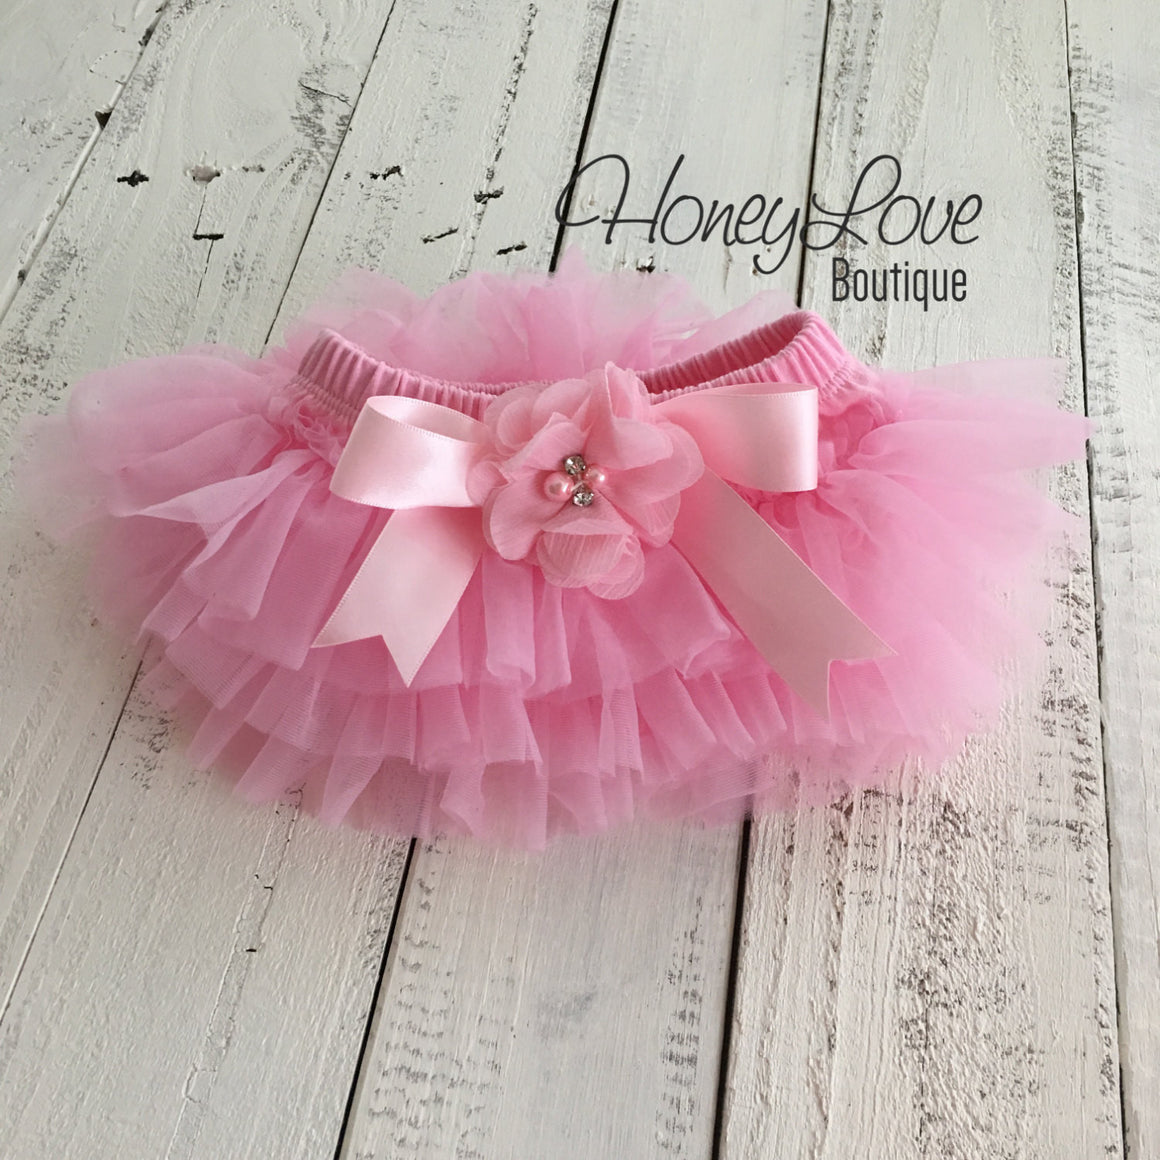 Light Pink tutu skirt bloomers and Light Pink/Bubblegum Pink flower headband - Embellished bloomers